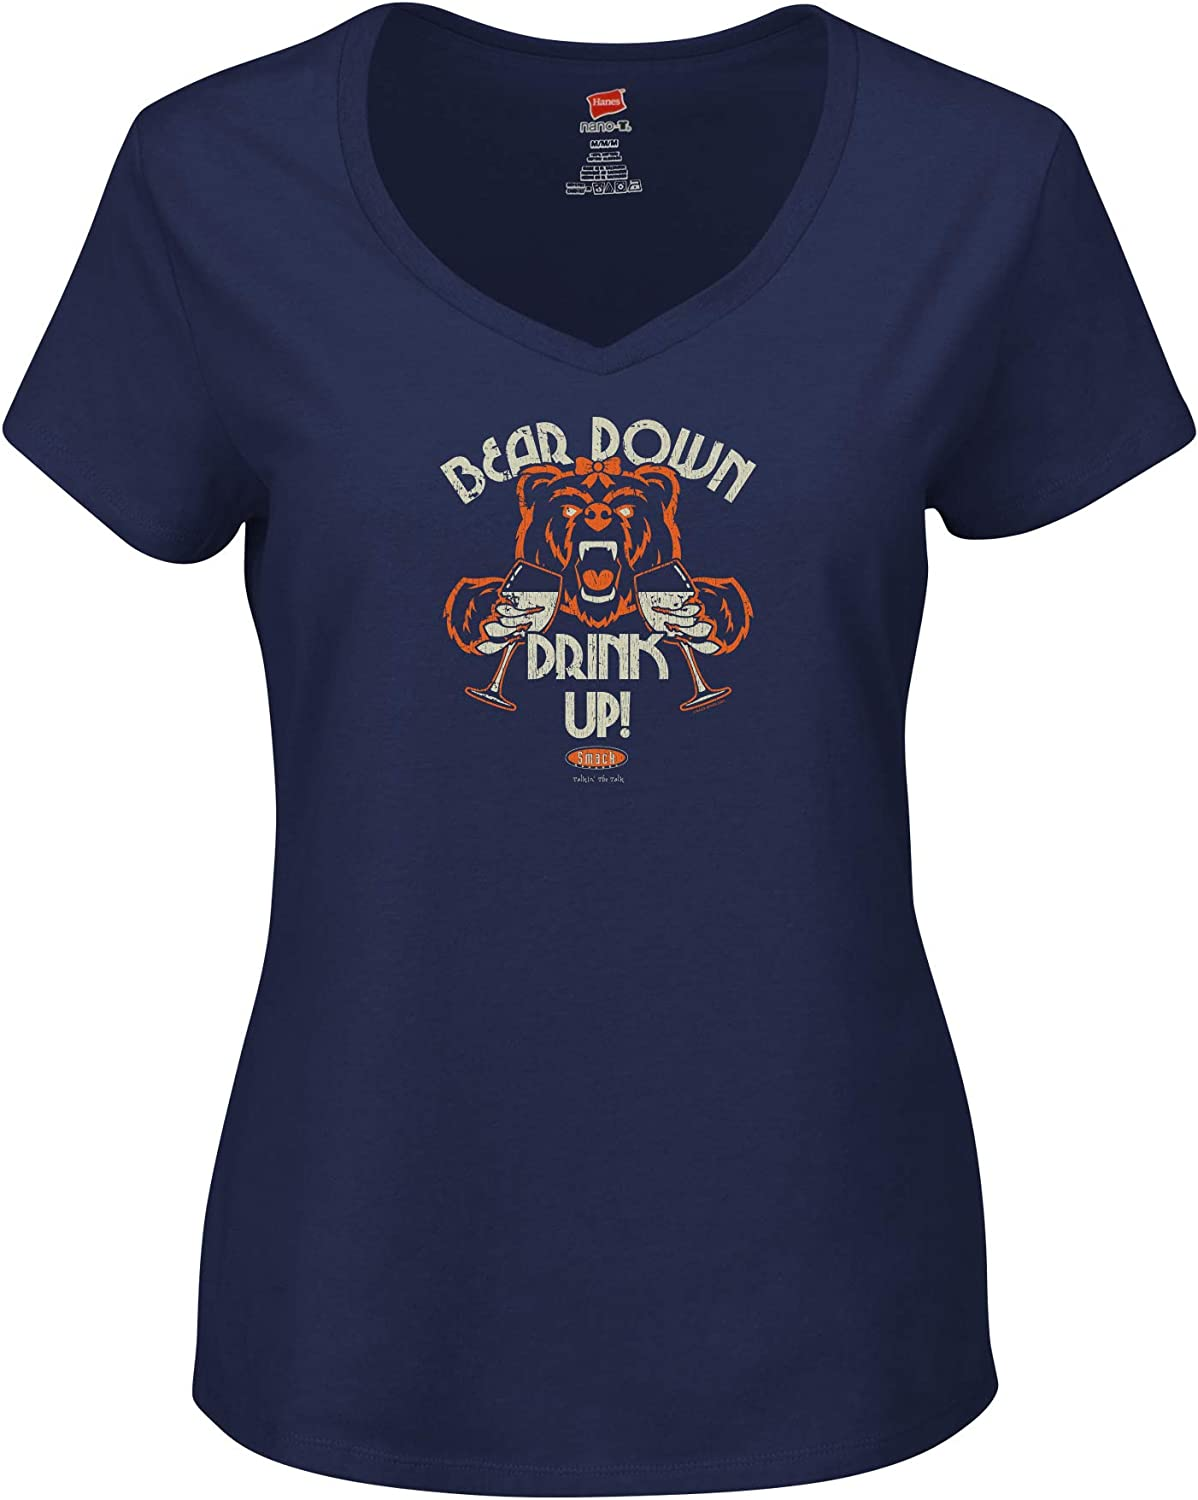 Xs-2X Smack Apparel Chicago Football Fans Bear Down Drink Up Navy Ladies Shirt